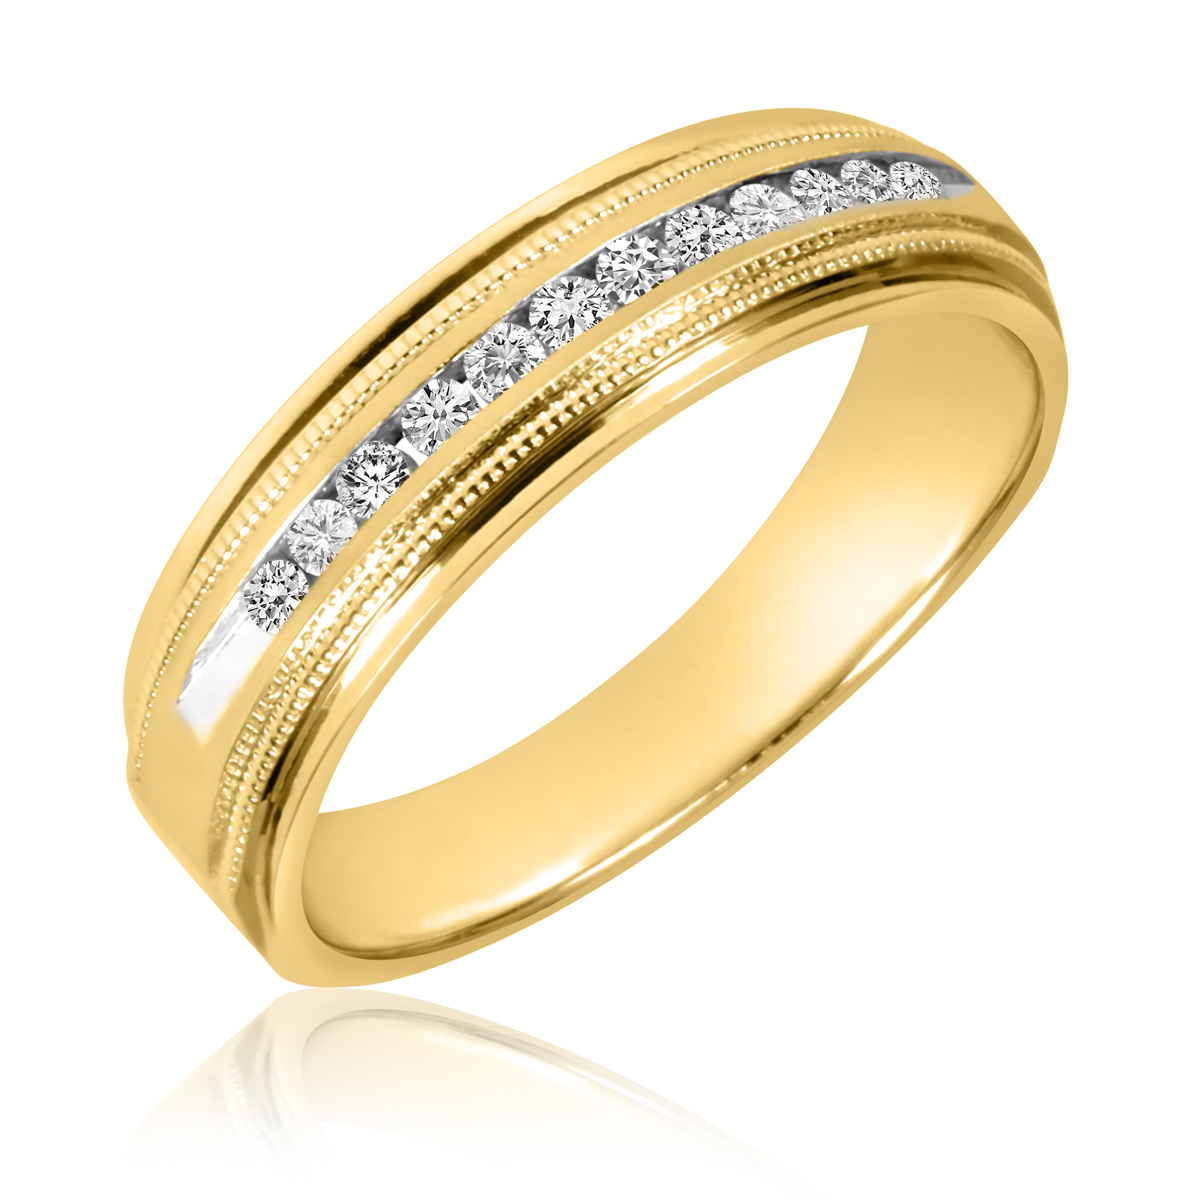 1 4 CT TW Diamond Mens Wedding Band 14K Yellow Gold